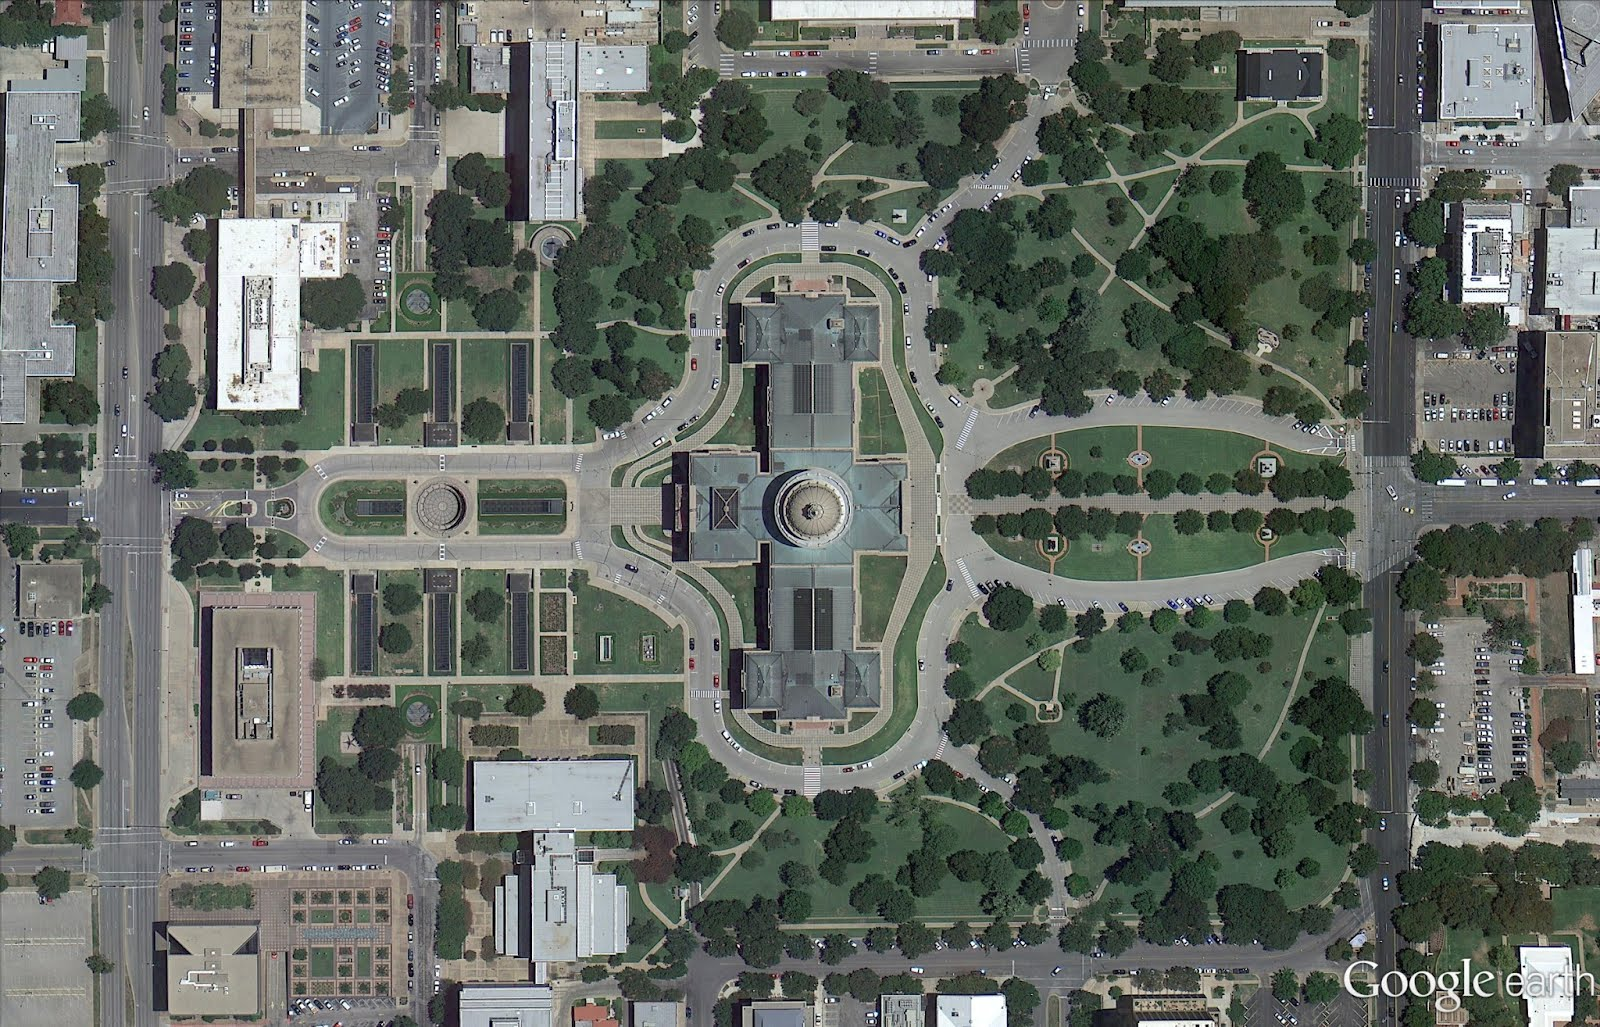 Directions Parking Utah State Capitol Best U S Capitol Images - Map of us capitol building